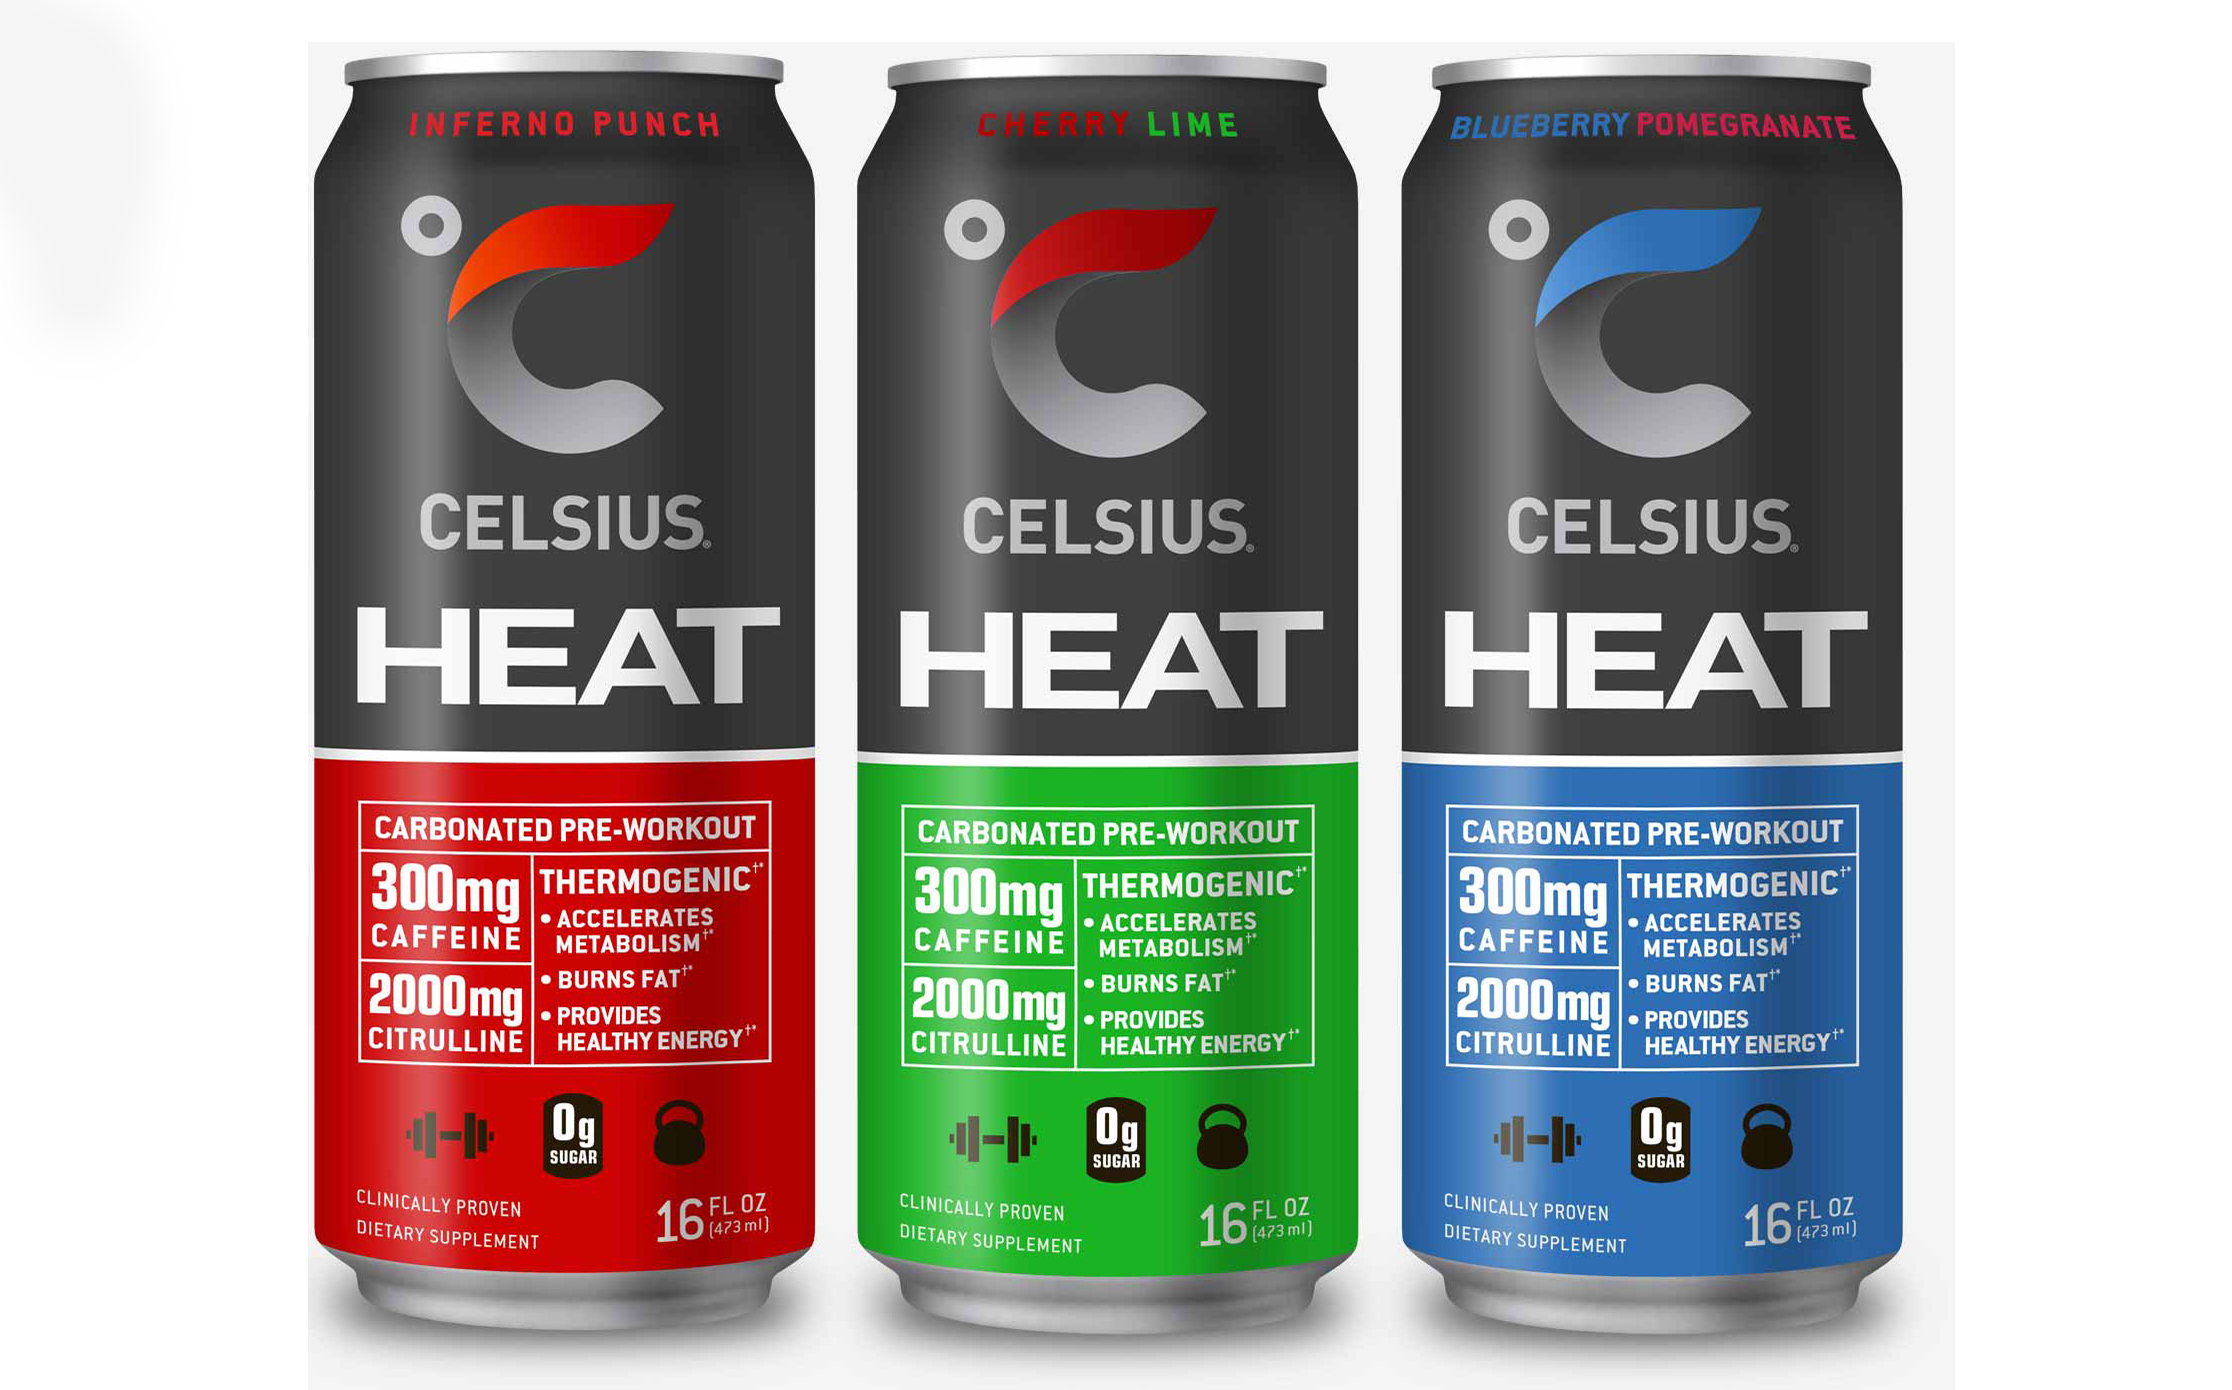 Celsius Holdings to acquire Func Food for $24.6m